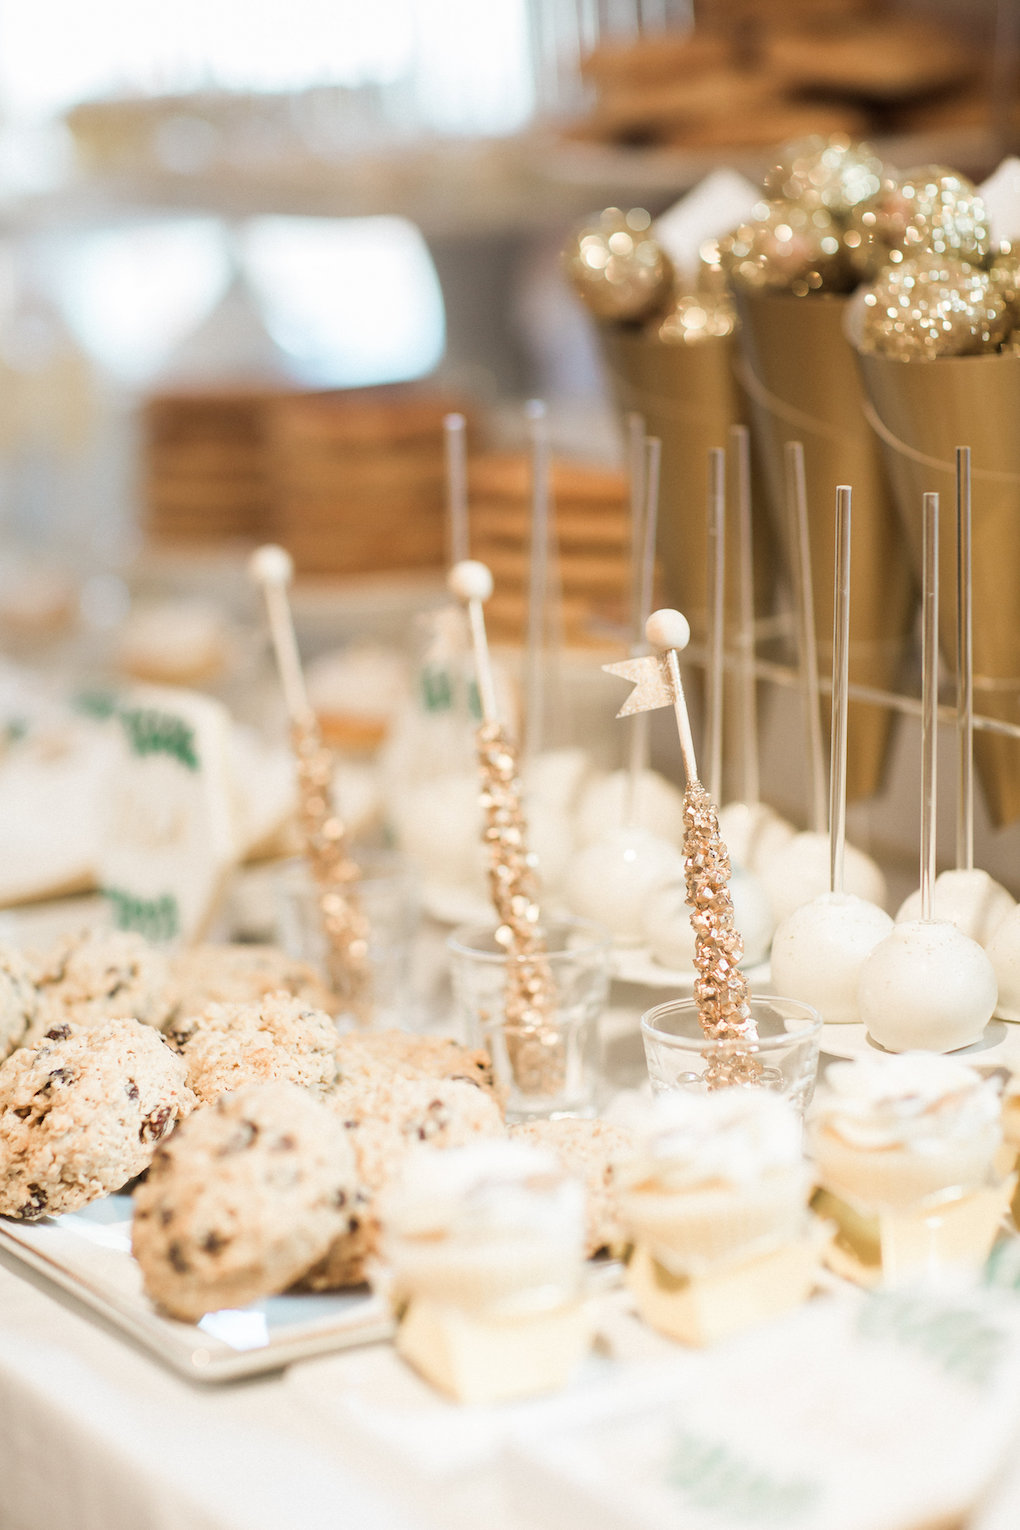 Unique wedding dessert ideas for chic wedding in Buffalo, NY planned by Exhale Events. Find more timeless wedding inspiration at exhale-events.com!